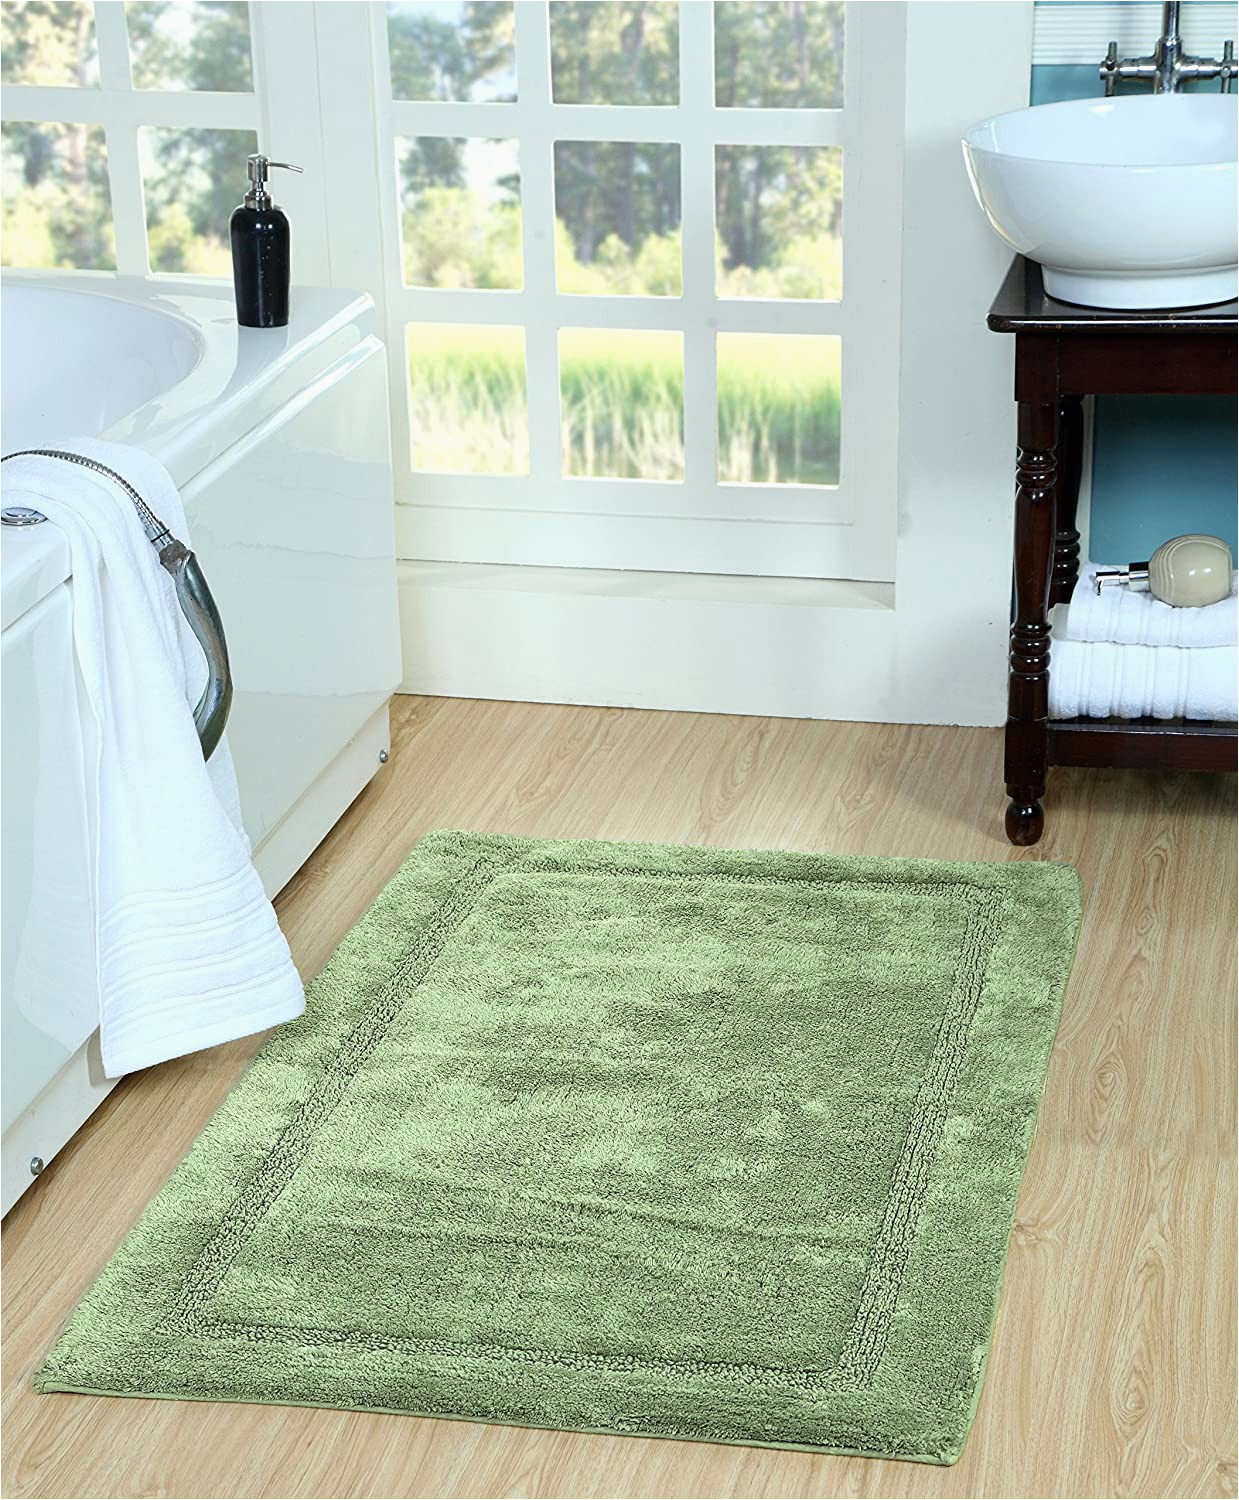 Good Quality Bath Rugs Amazon Saffron Fabs Sfbr1411s Bathroom Rug In Coral 34